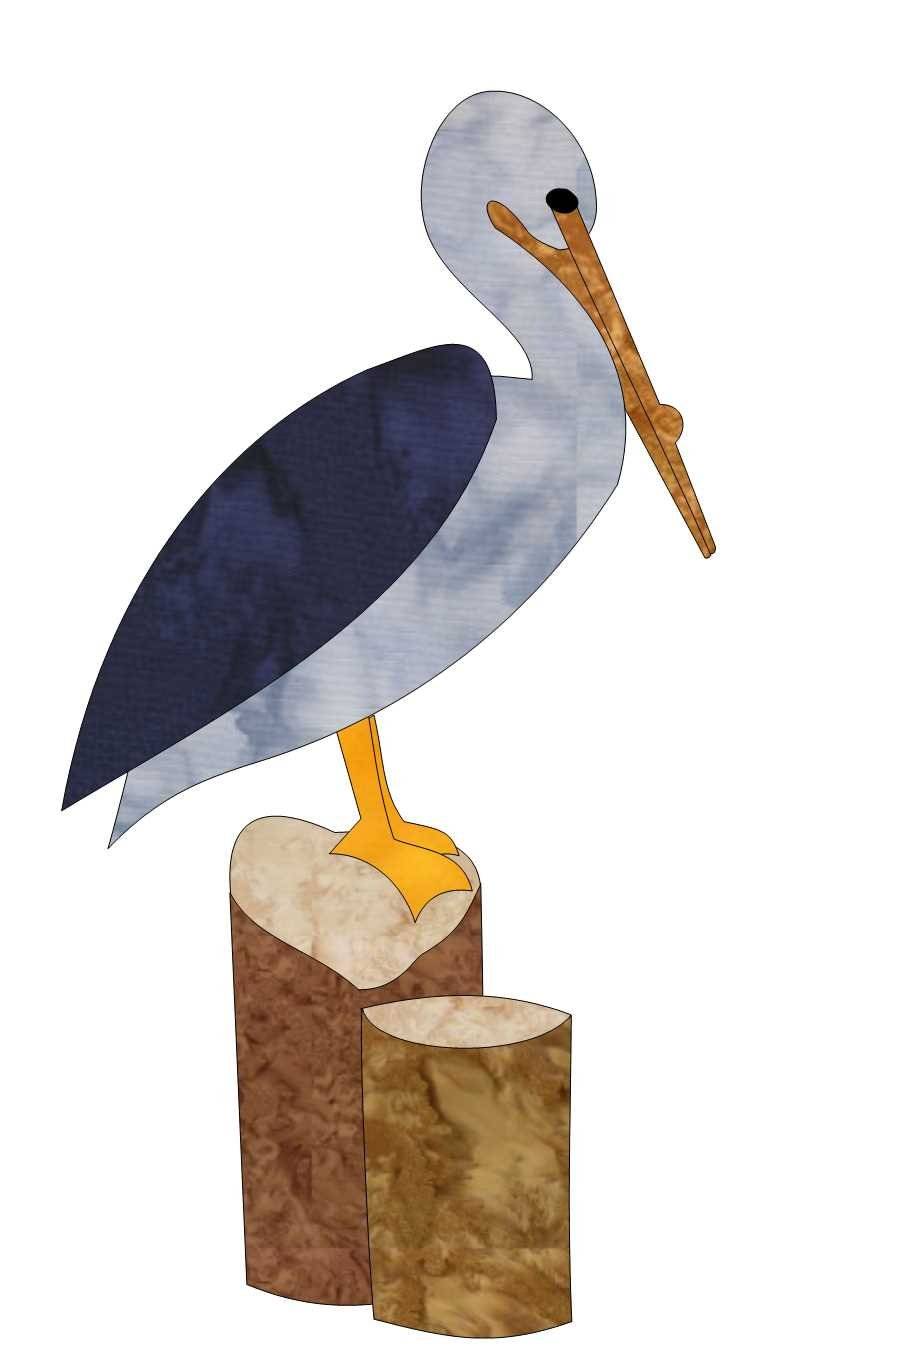 Beach Dreams Block 4 - Pelican on a Piling